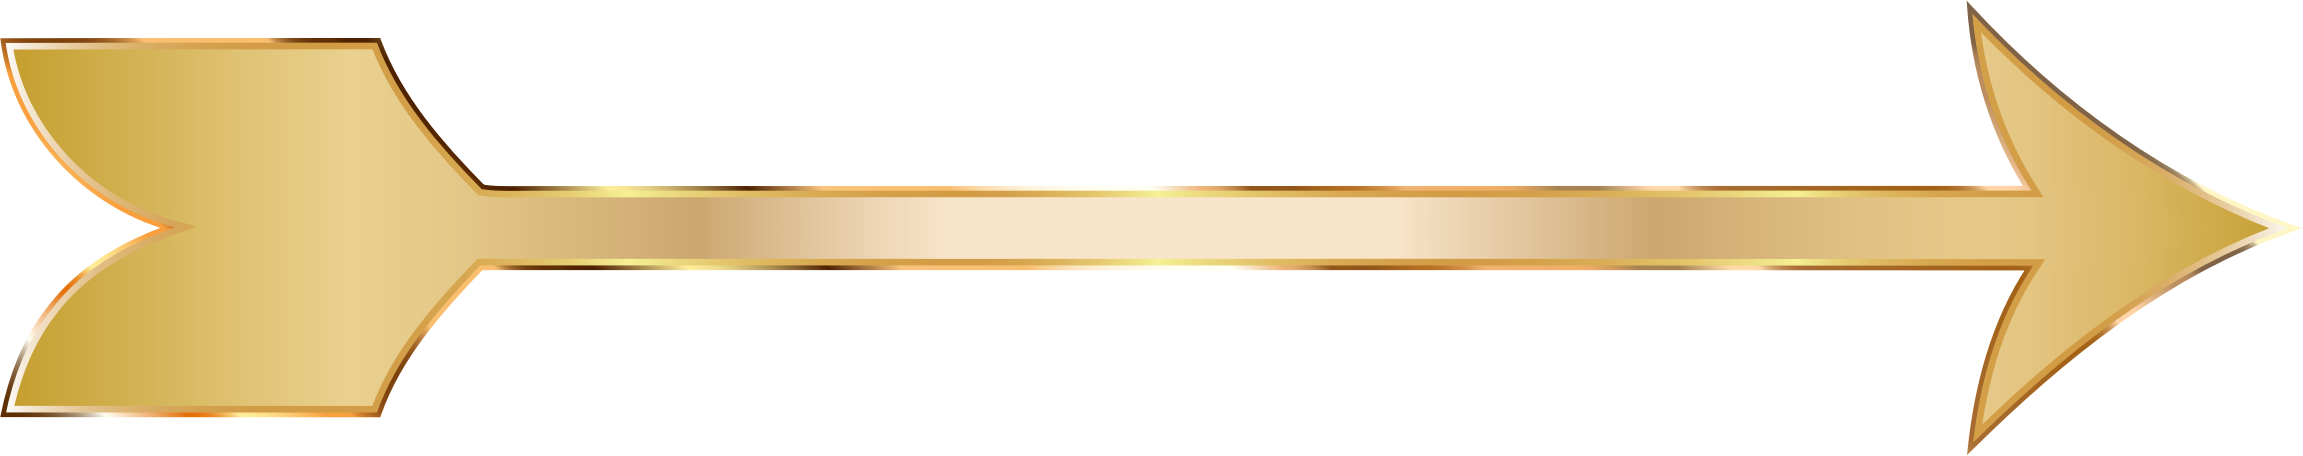 Gold arrow png. Golden no background icons